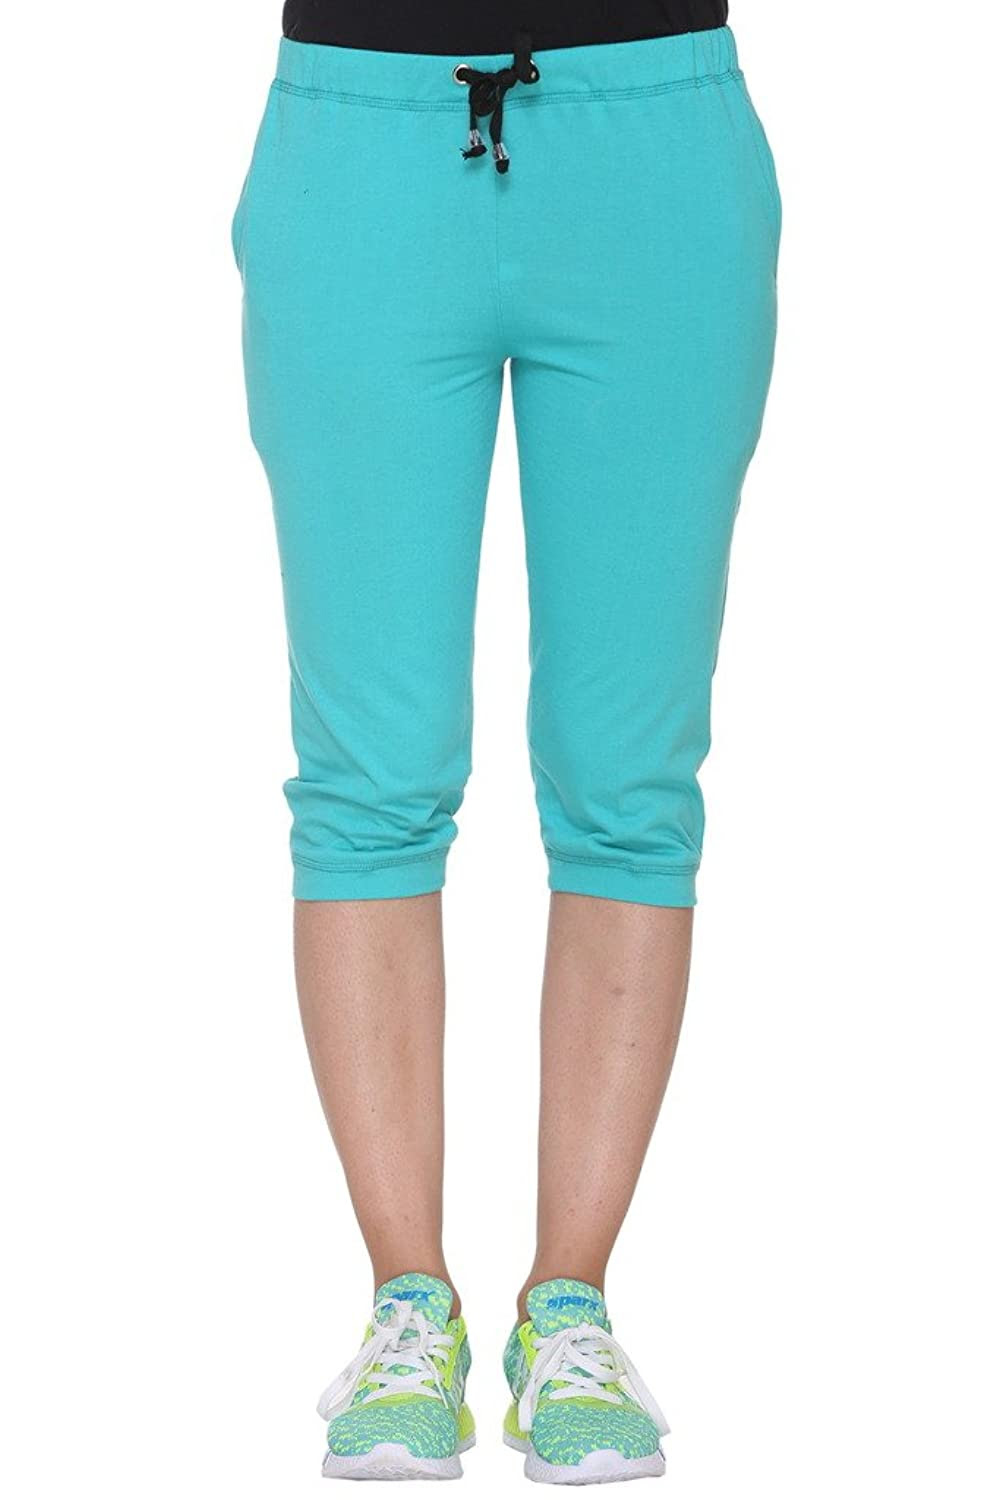 Deals on Vimal Cotton Blended Capri For Women